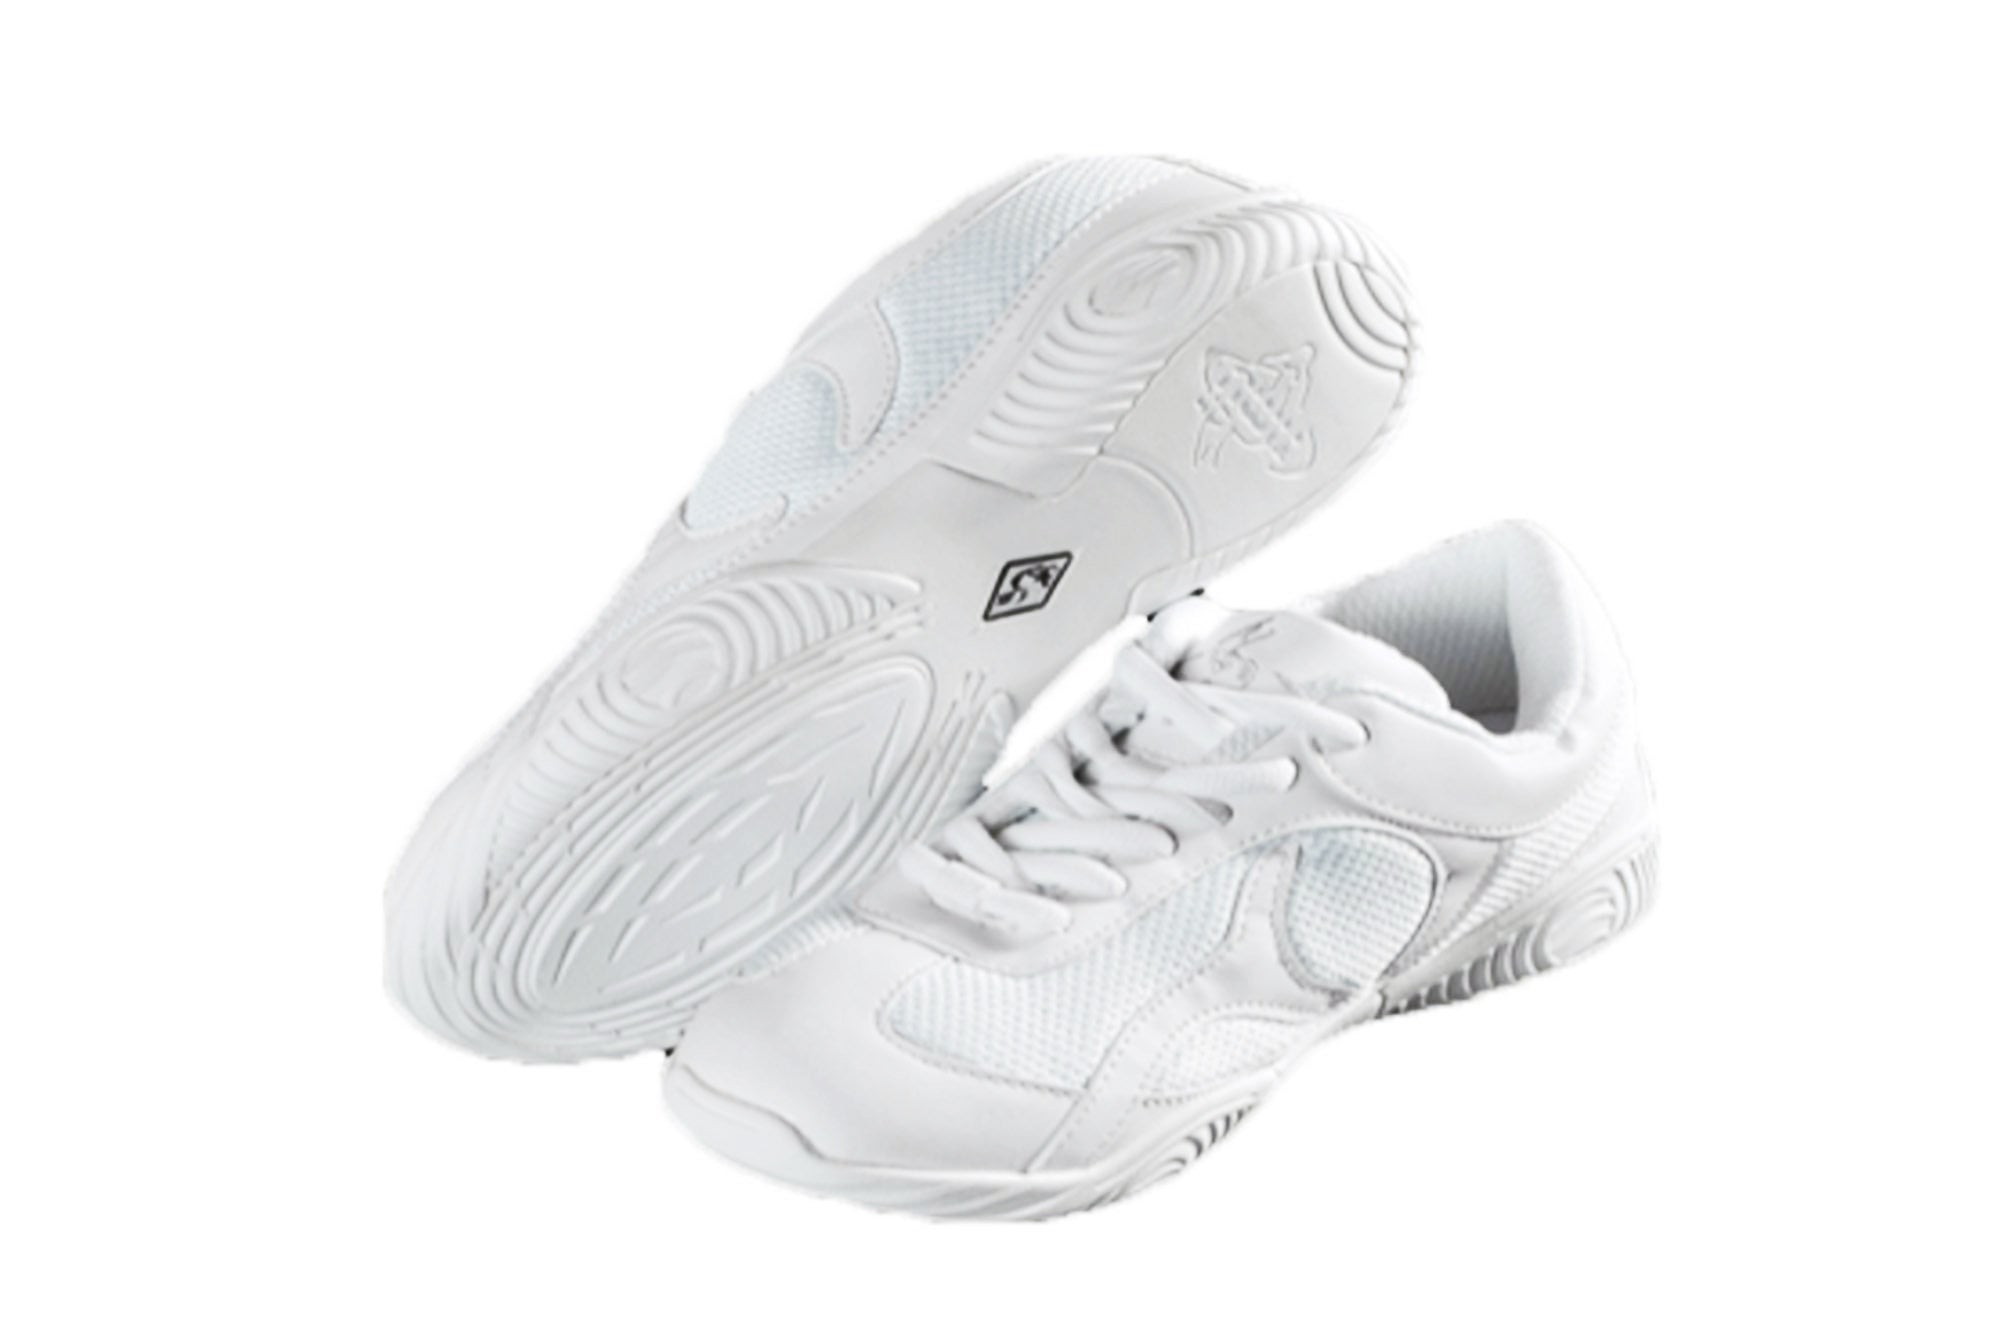 Adrenaline 901 Mesh Cheer Shoes (White Low Top)